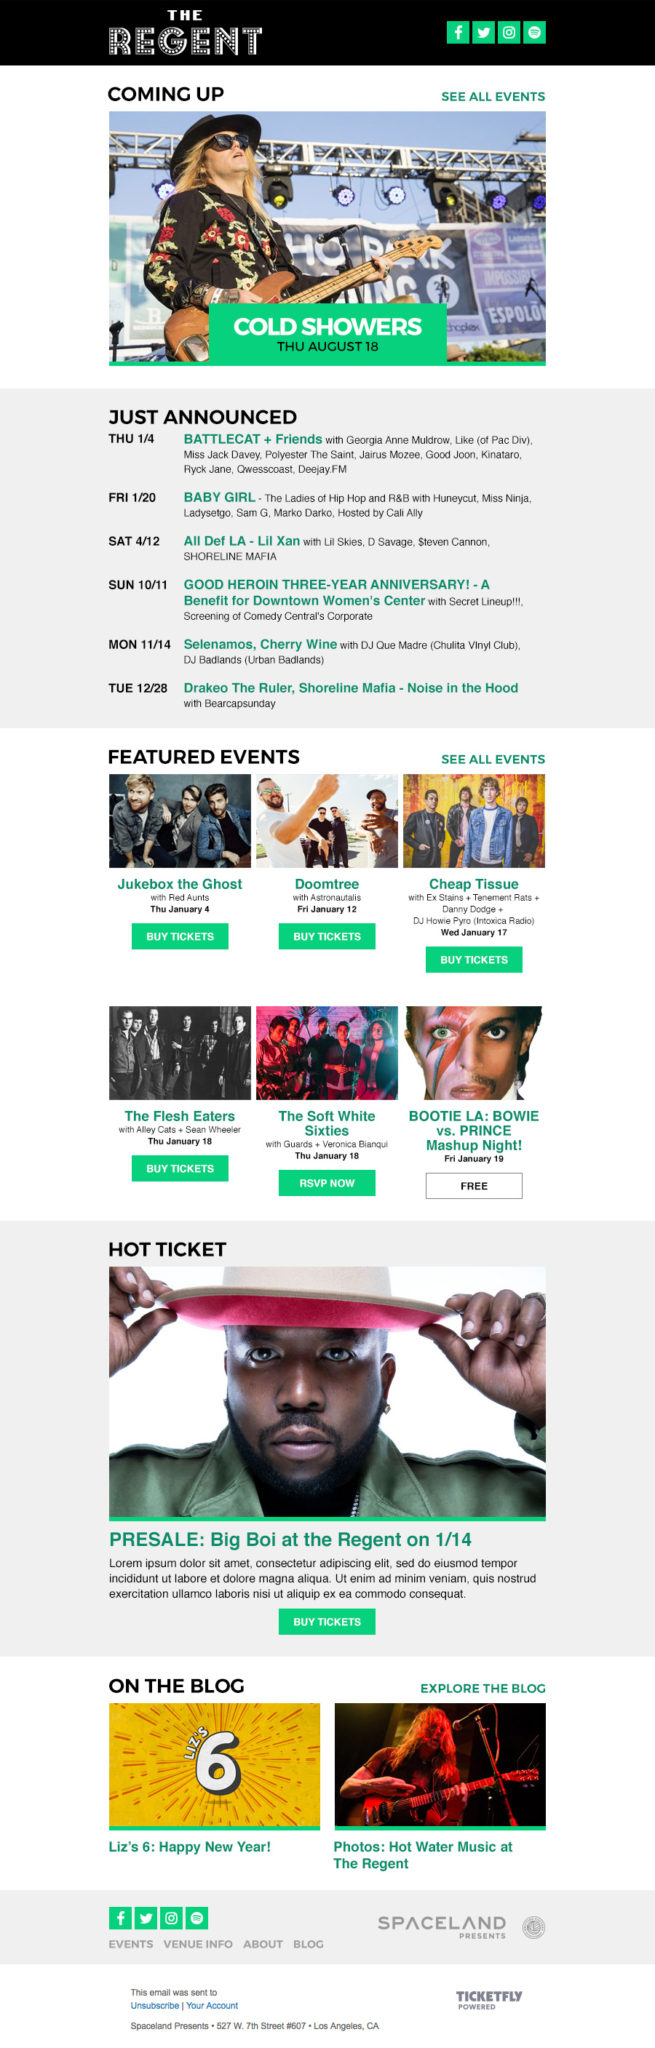 Spaceland Presents Email Newsletter Redesign